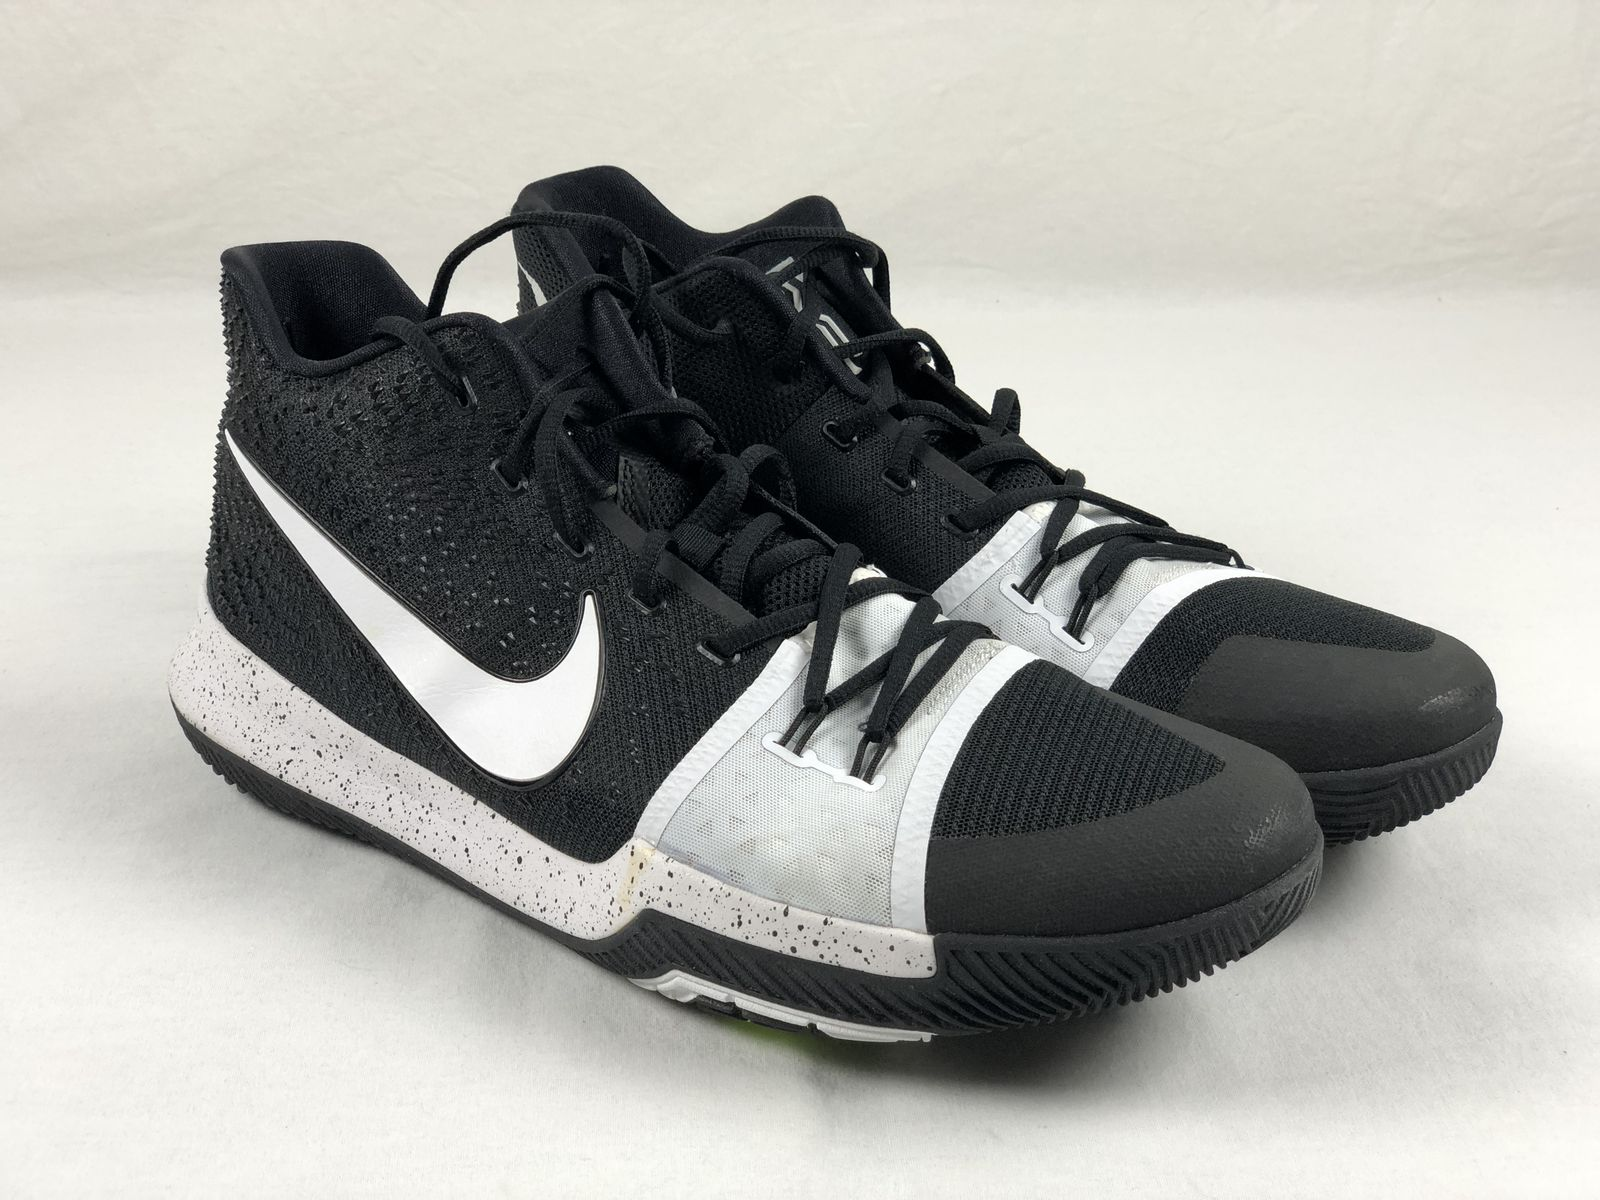 4925bec8010b Details about Nike Kyrie Irving - Black White Basketball Shoes (Men s 17) -  Used. Listed for charity